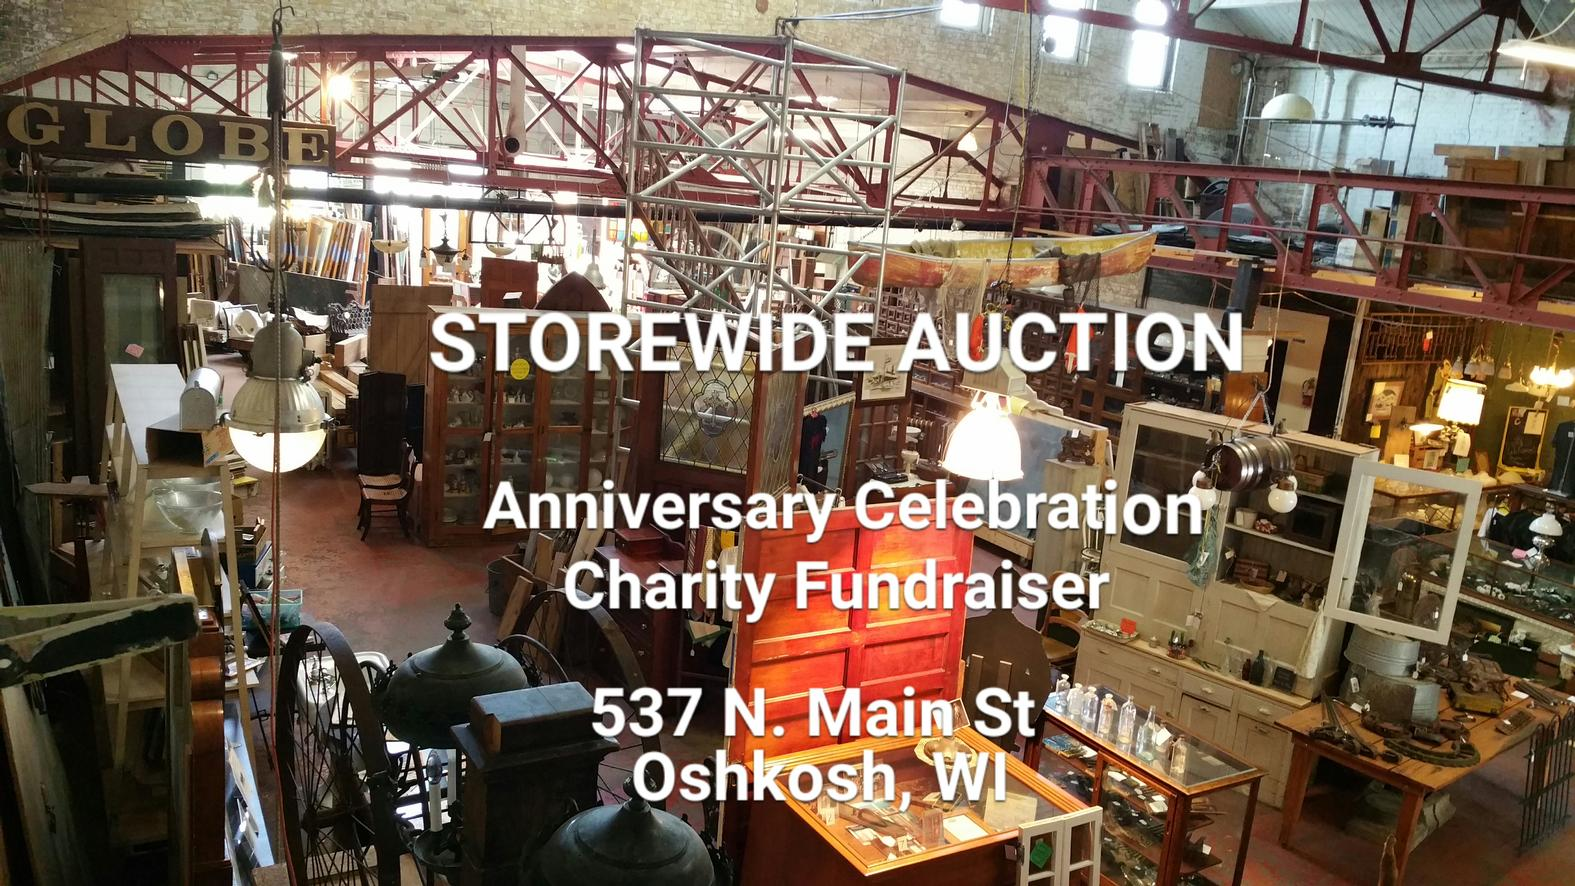 Storewide Auction Anniversary Celebration